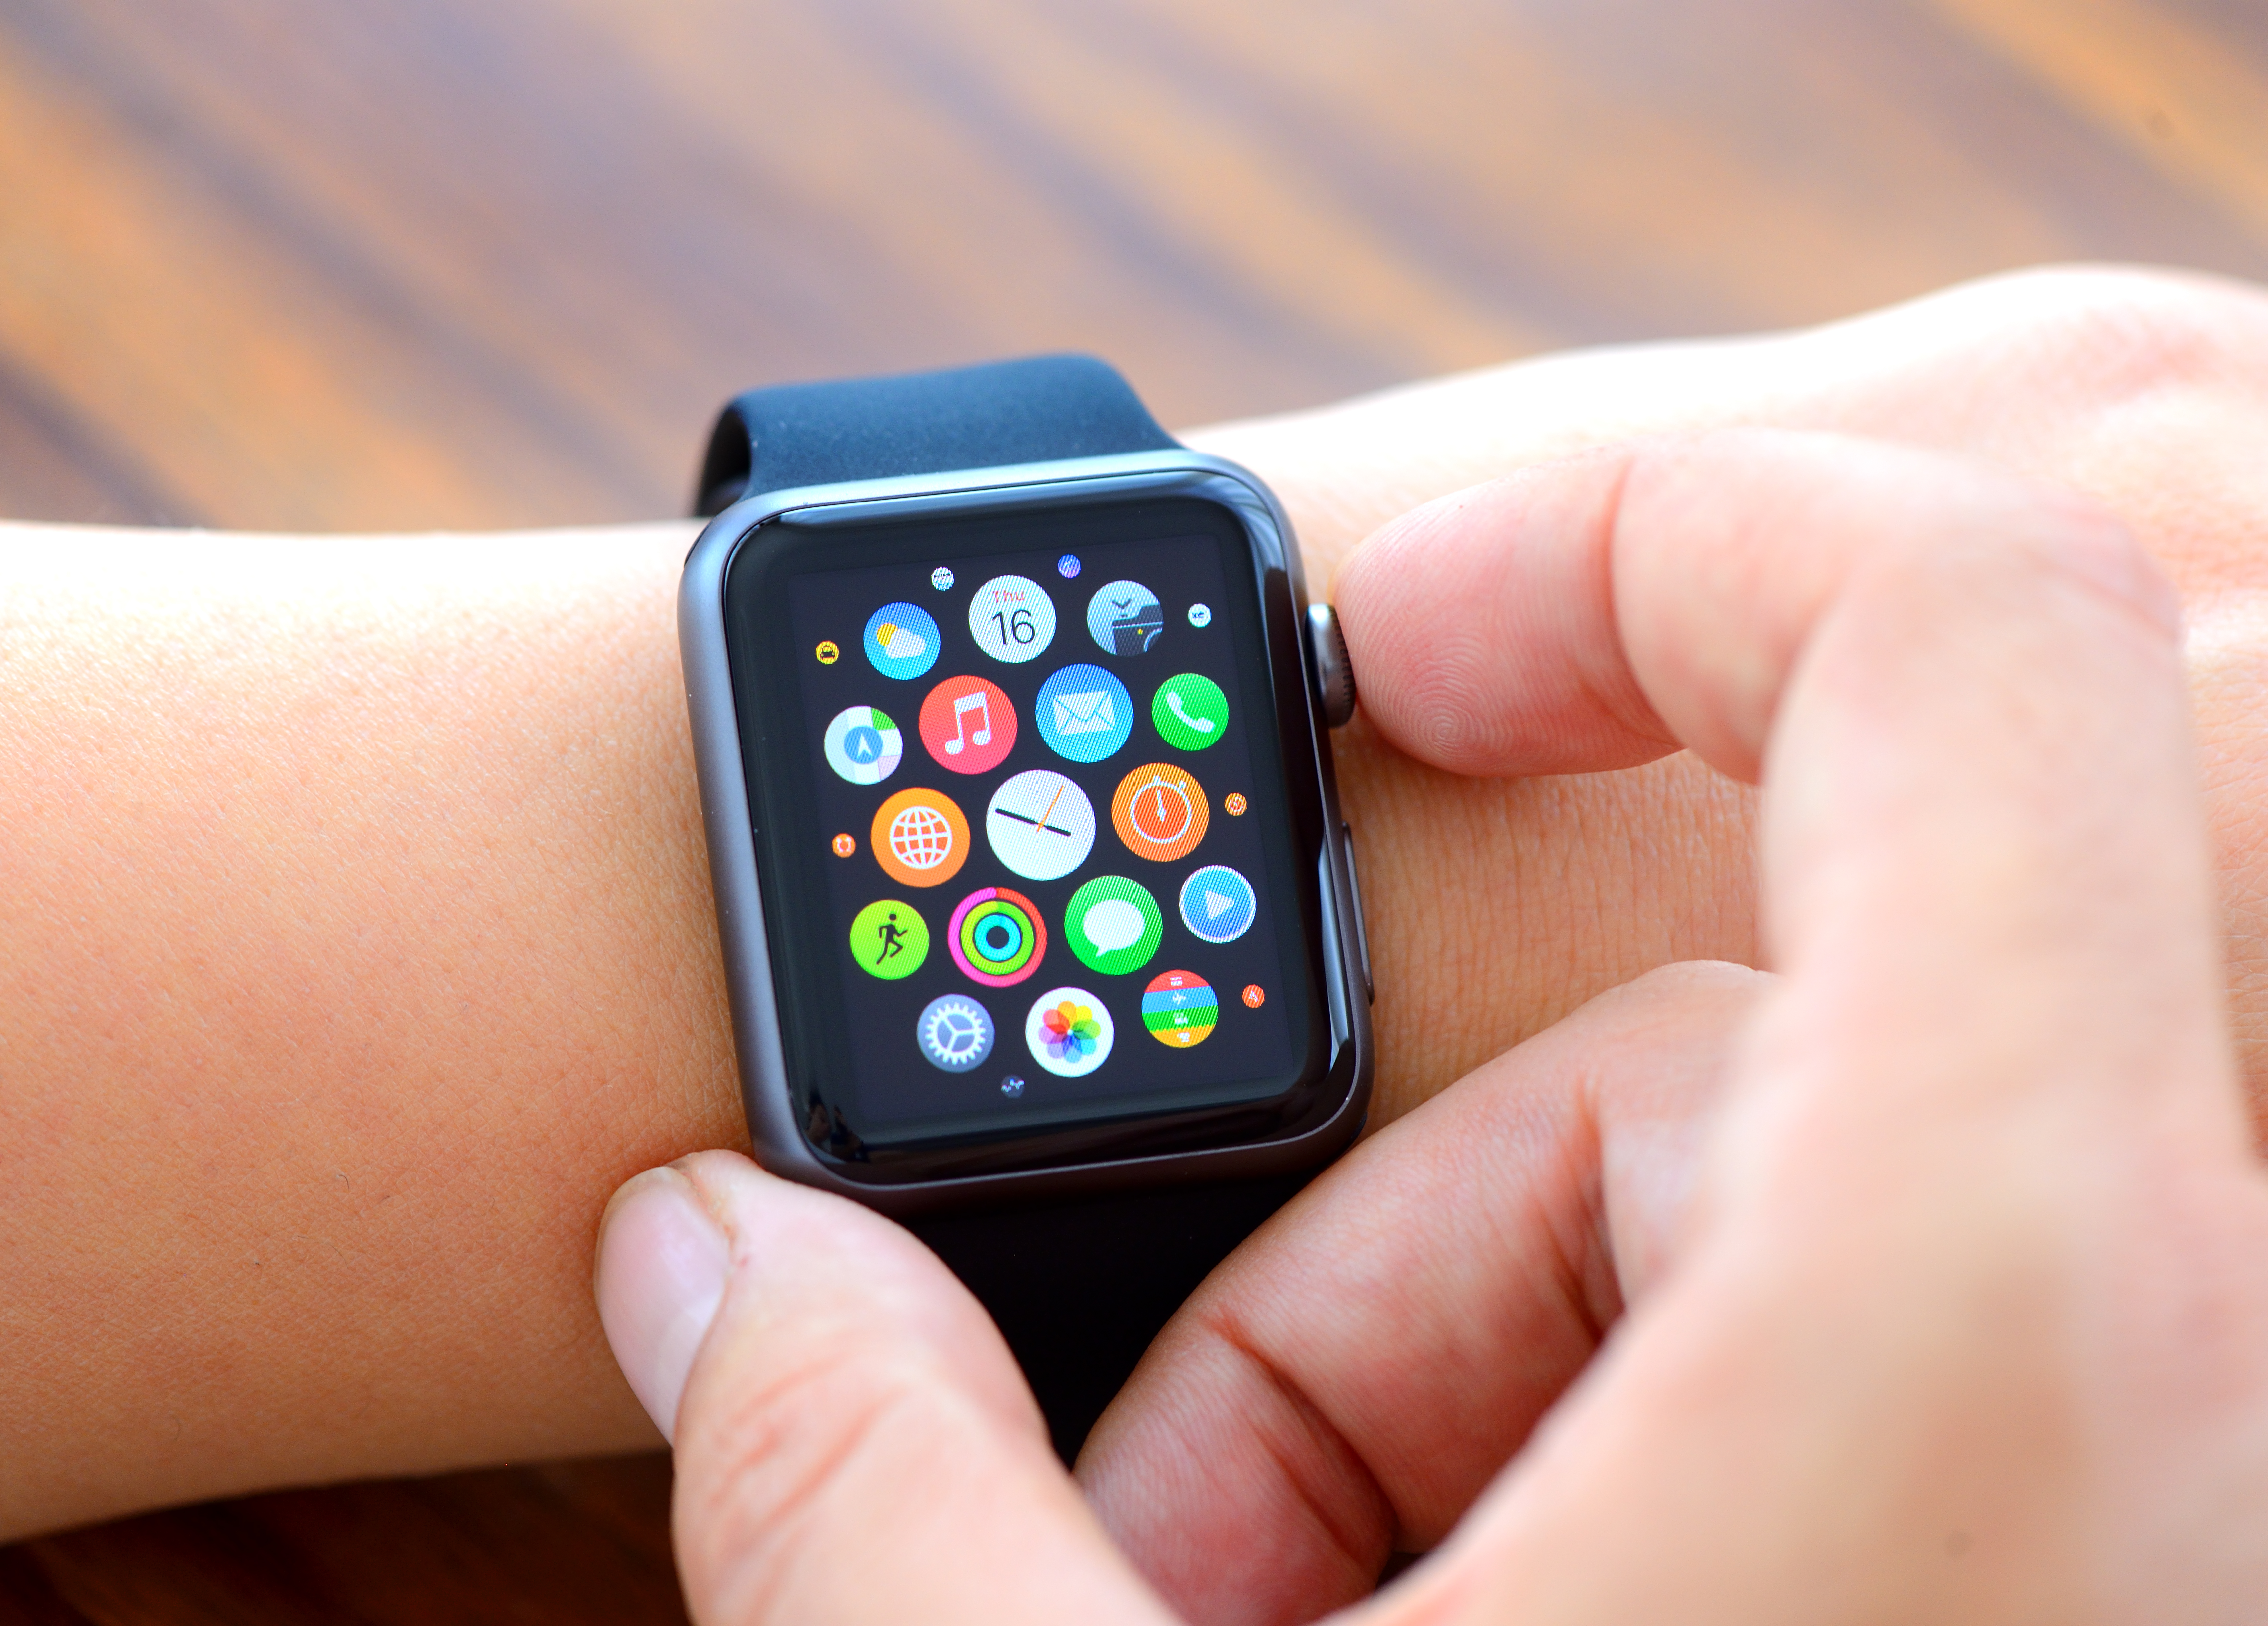 CEO Tim Cook says sales of the Apple Watch set a record during the first week of holiday shopping.